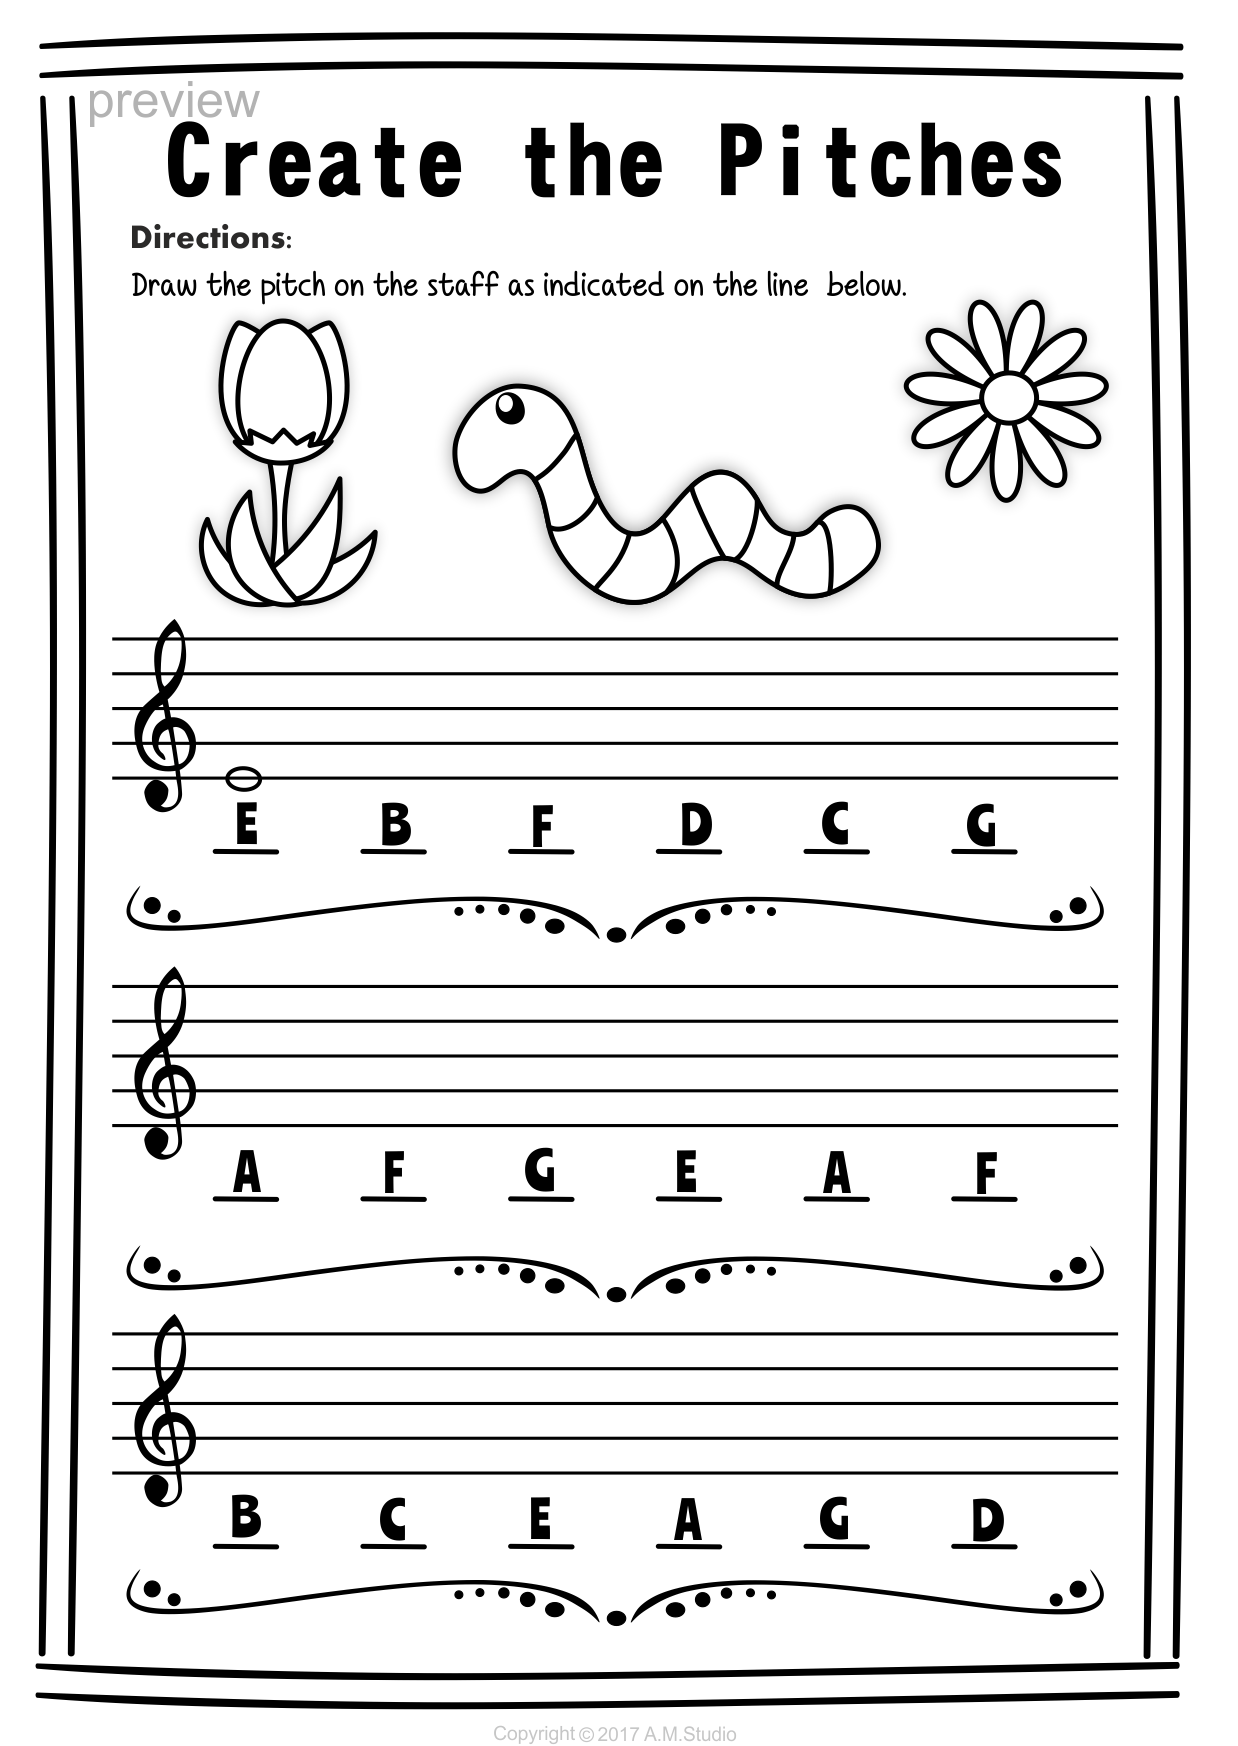 Worksheet Bass Clef Notes Worksheet Worksheet Fun